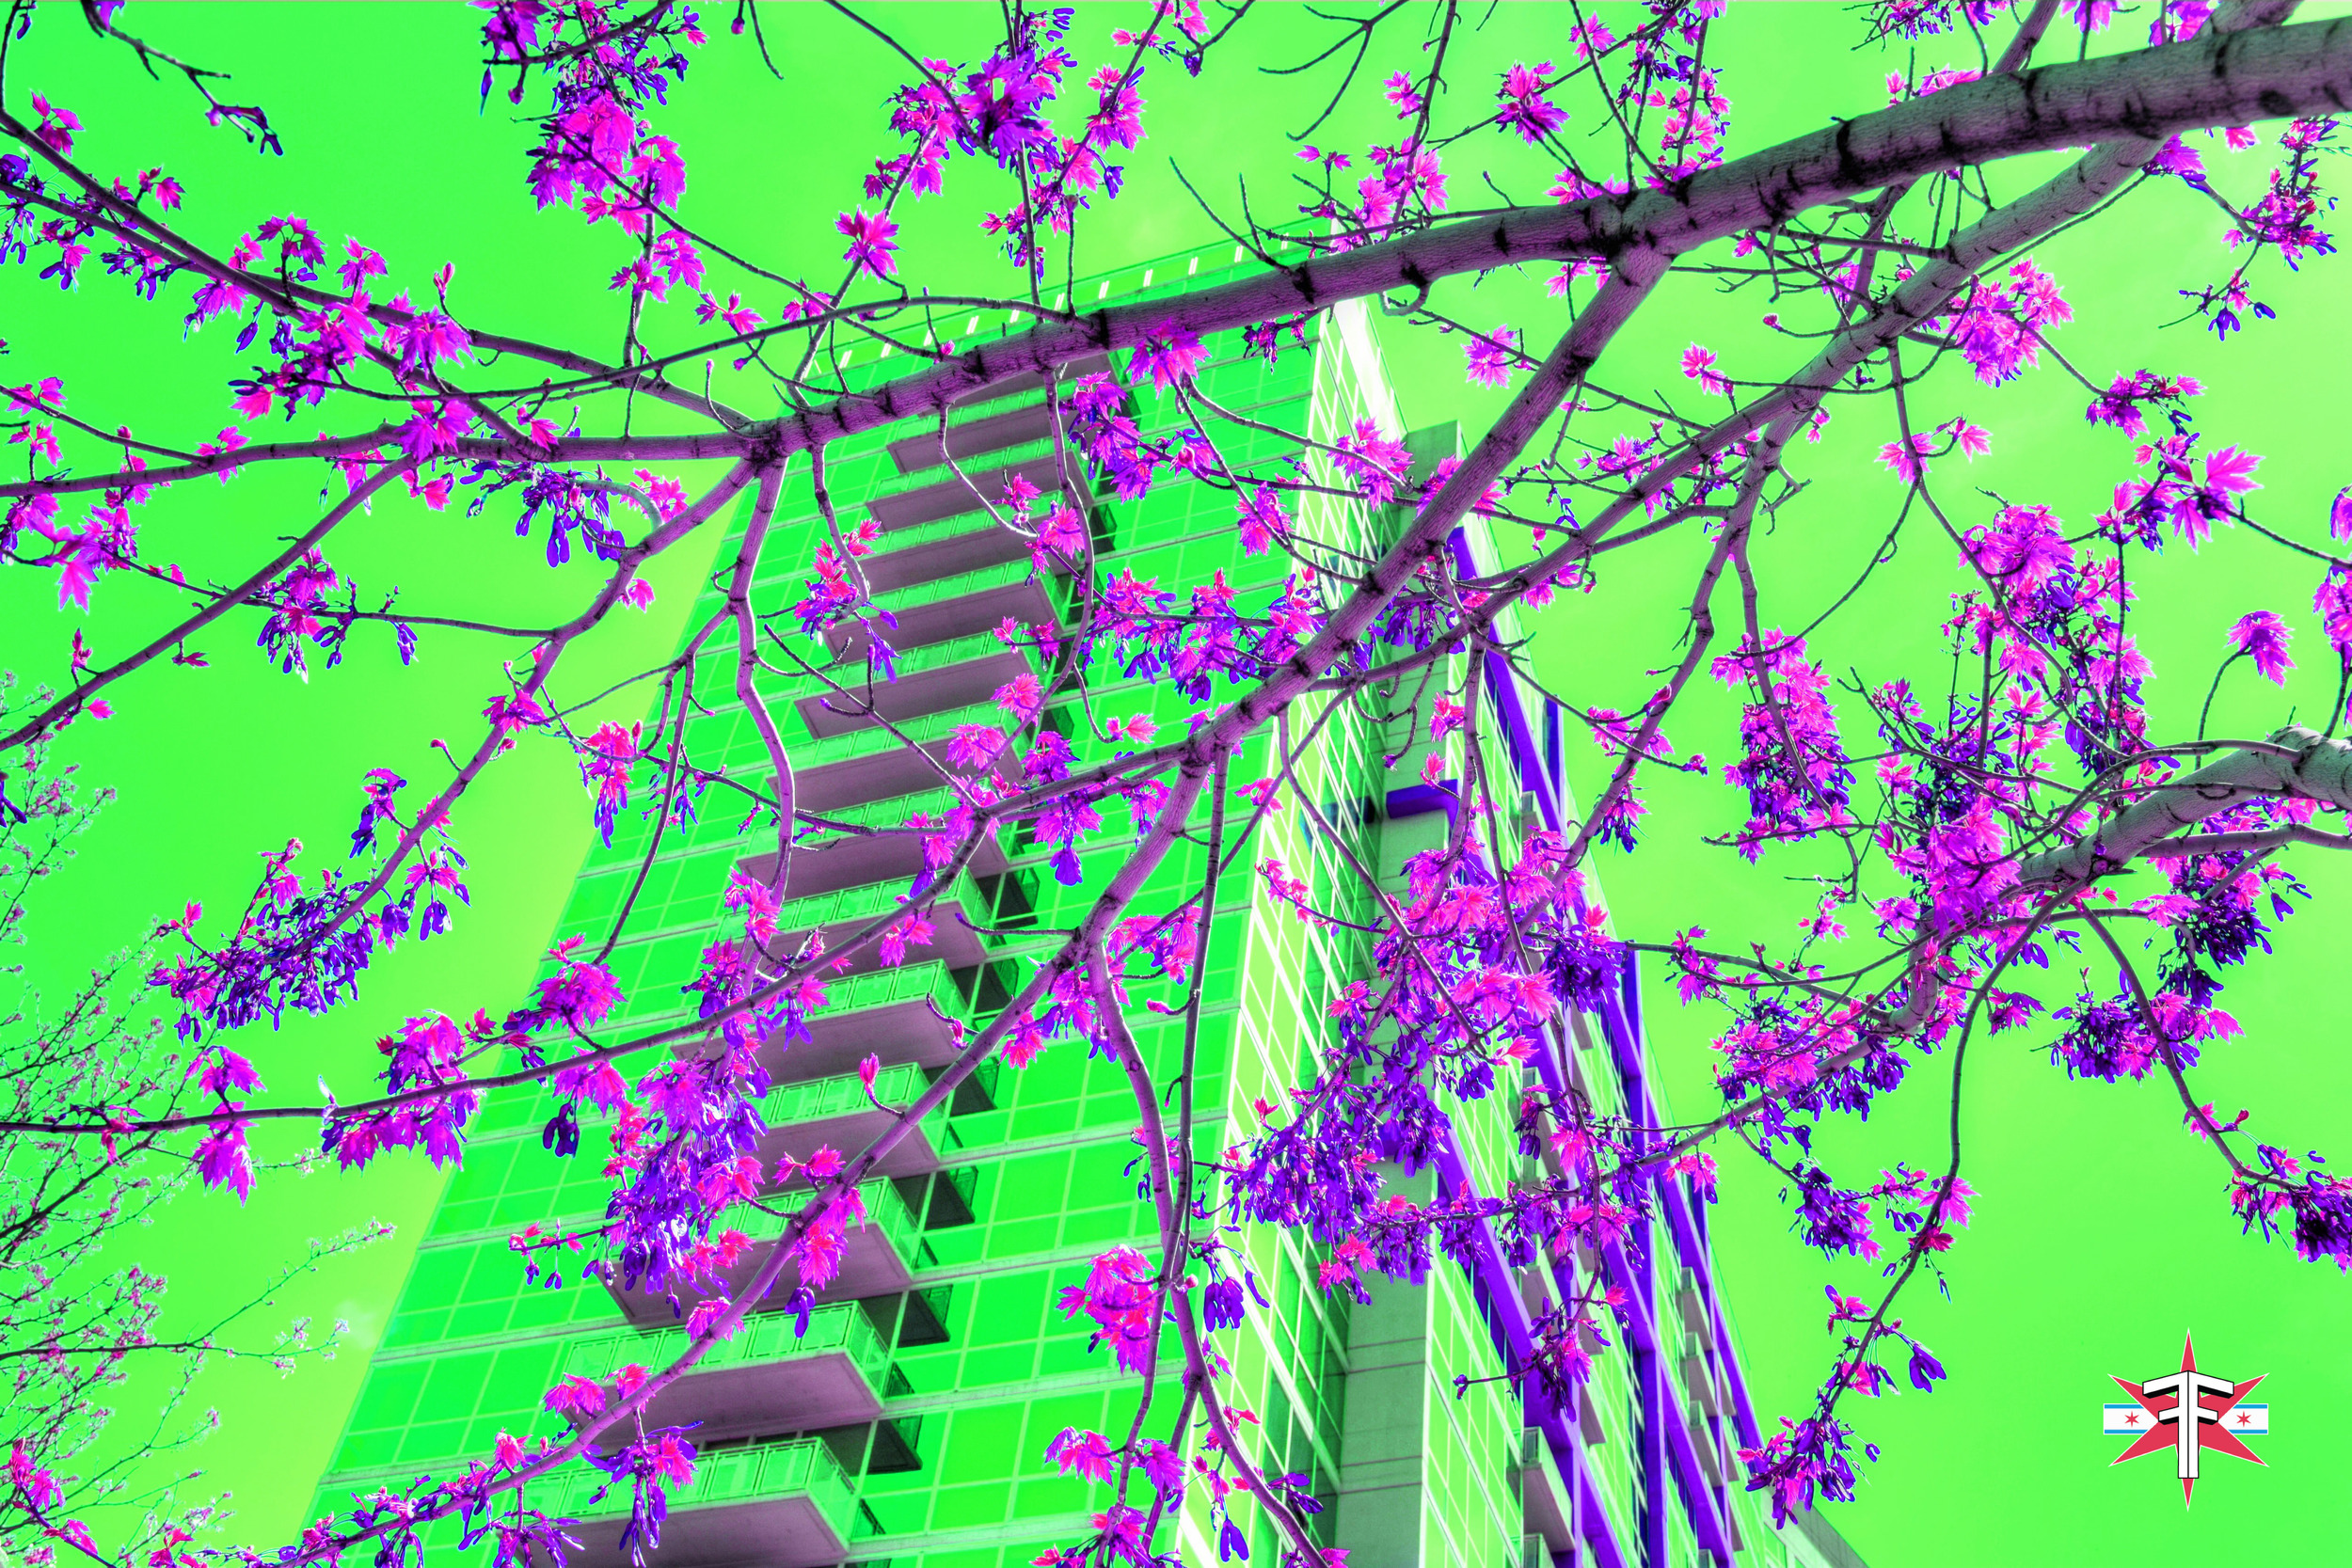 chicago art abstract eric formato photography color travel cityscape architecture saturated citycapes bright vibrant artistic-82.jpg